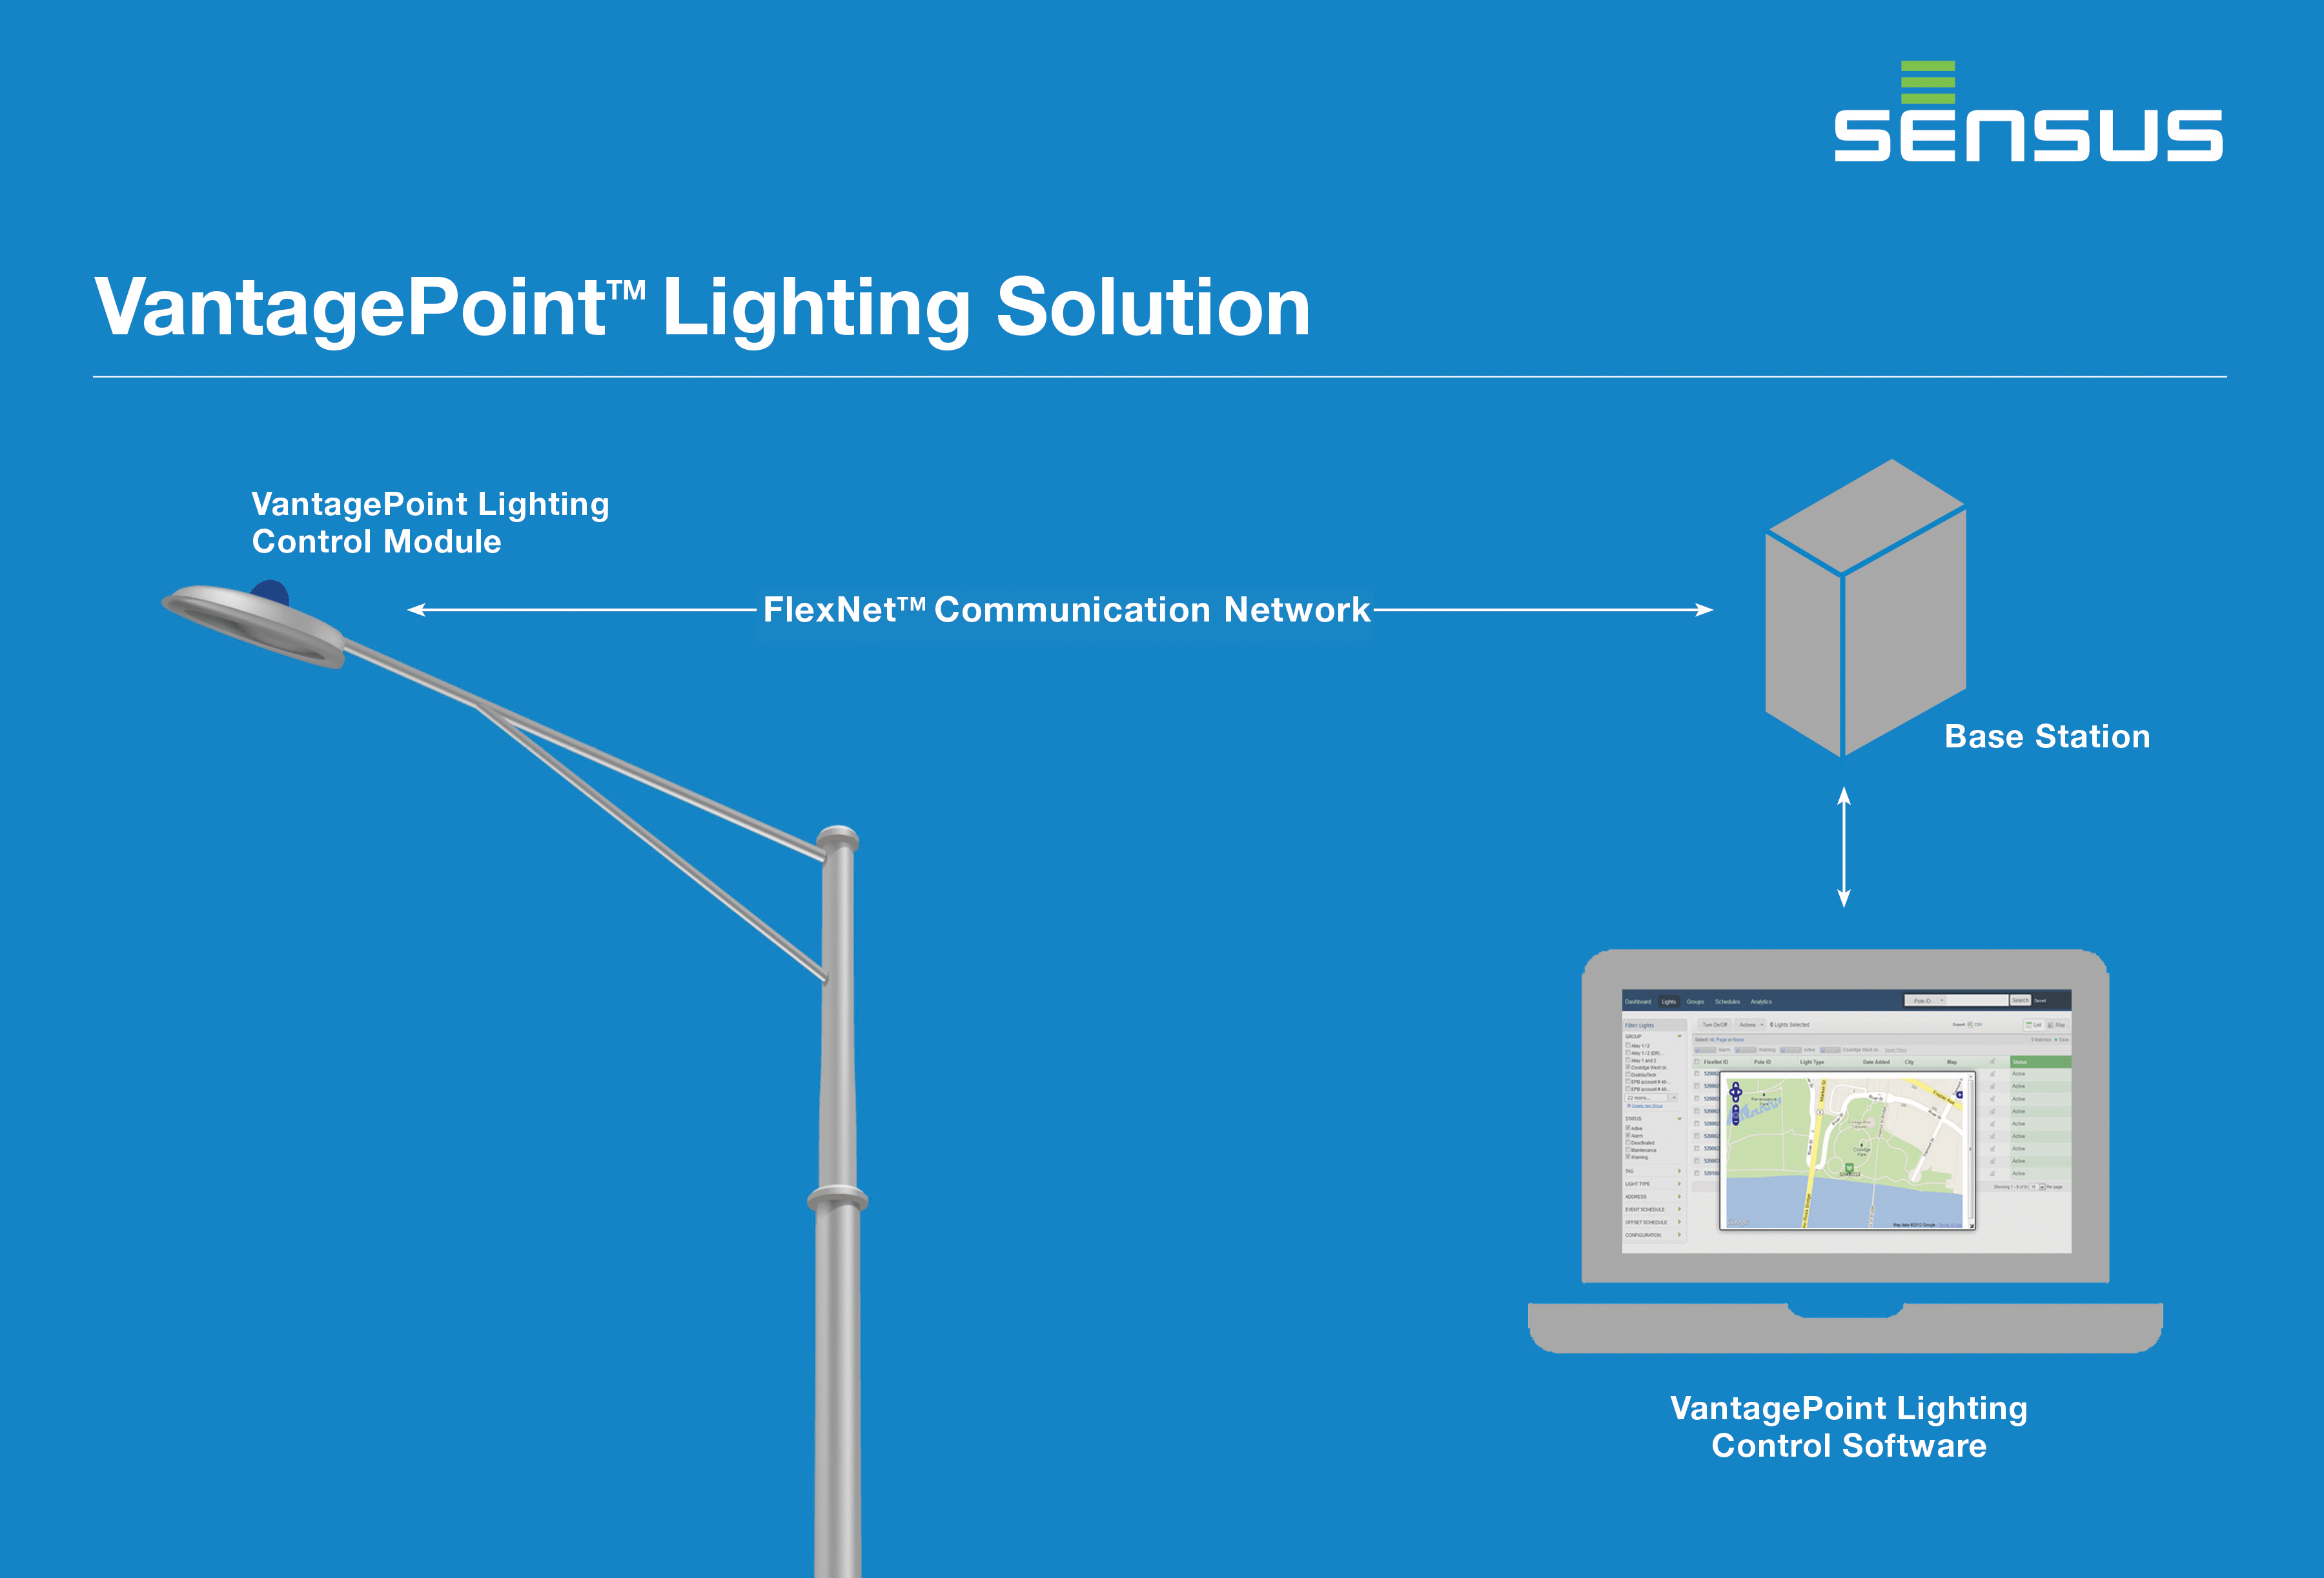 Sensus Launches Vantagepoint Lighting